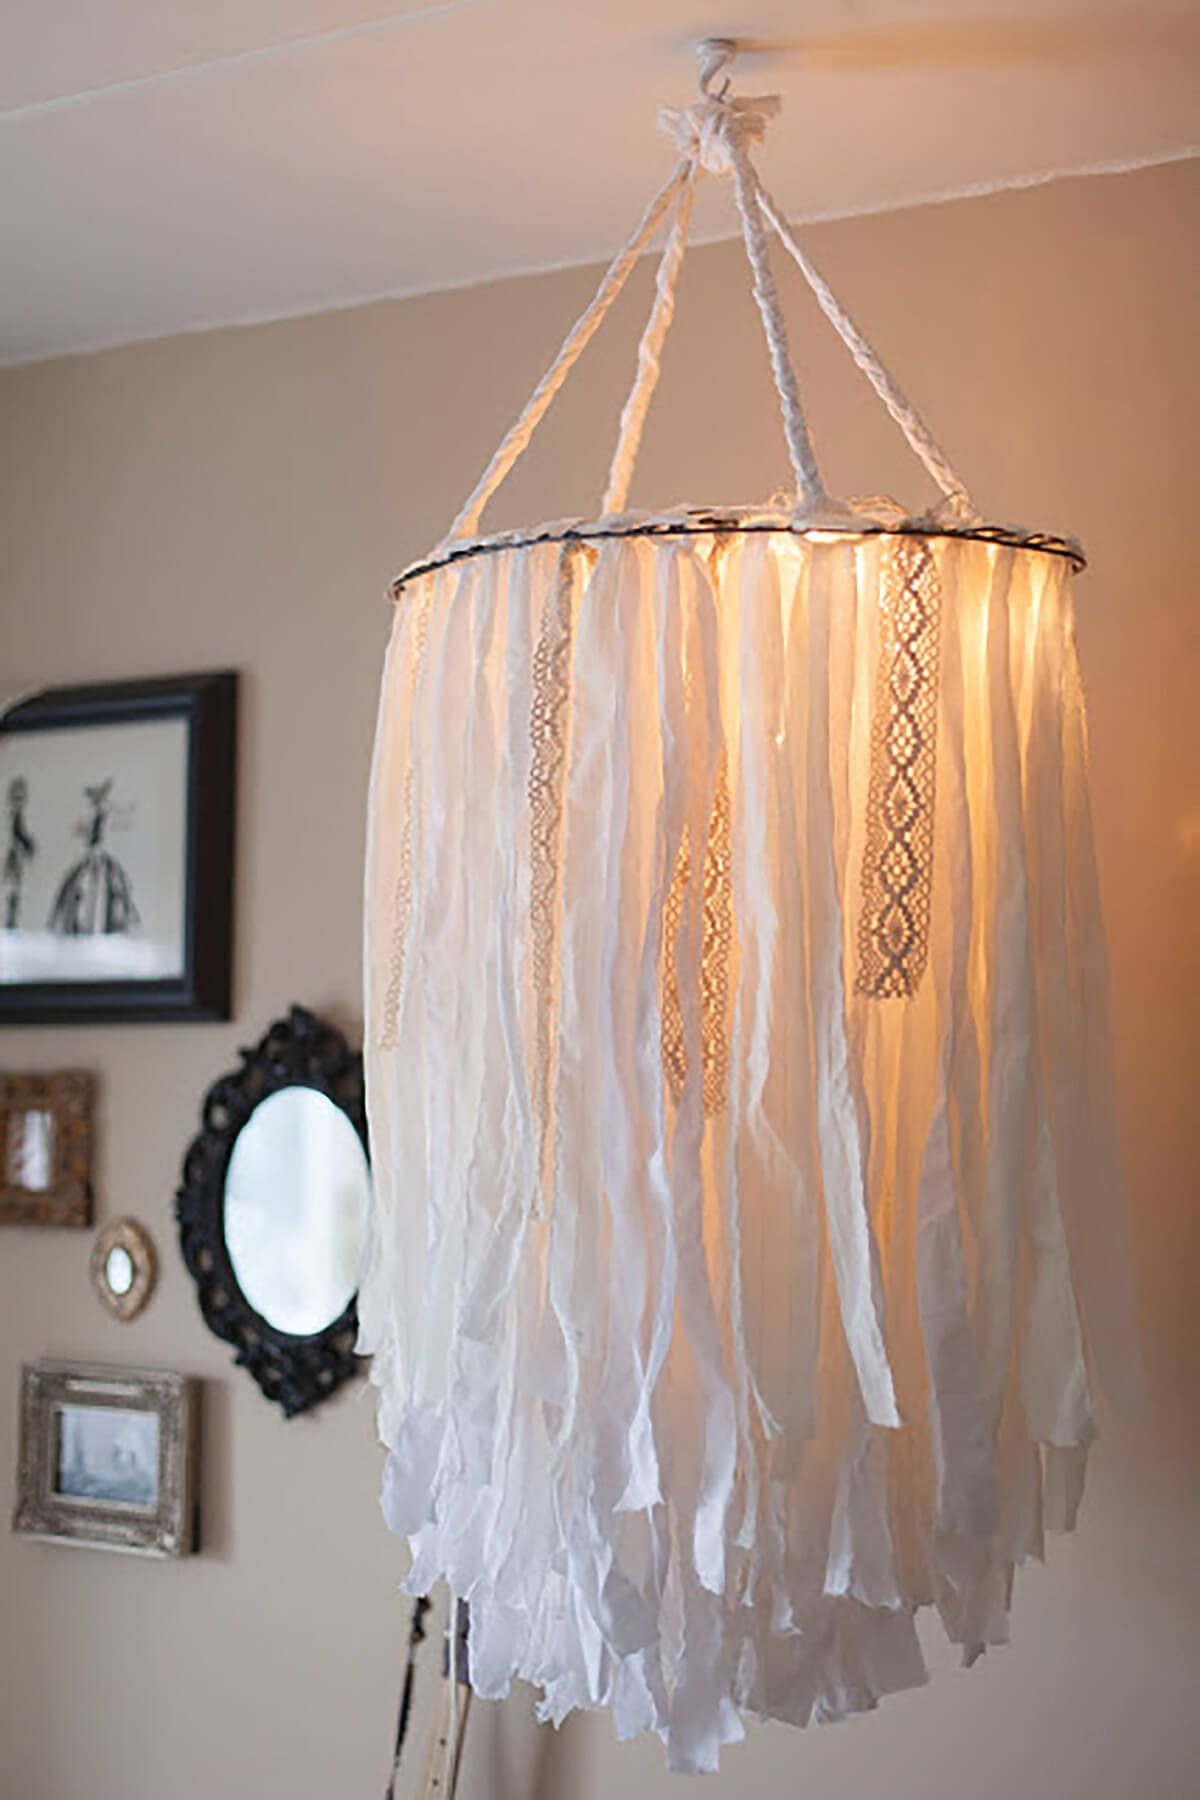 34 of the most creative diy lamps and lamp shades lampshades 34 of the most creative diy lamps and lamp shades chandelier ideasfabric arubaitofo Images